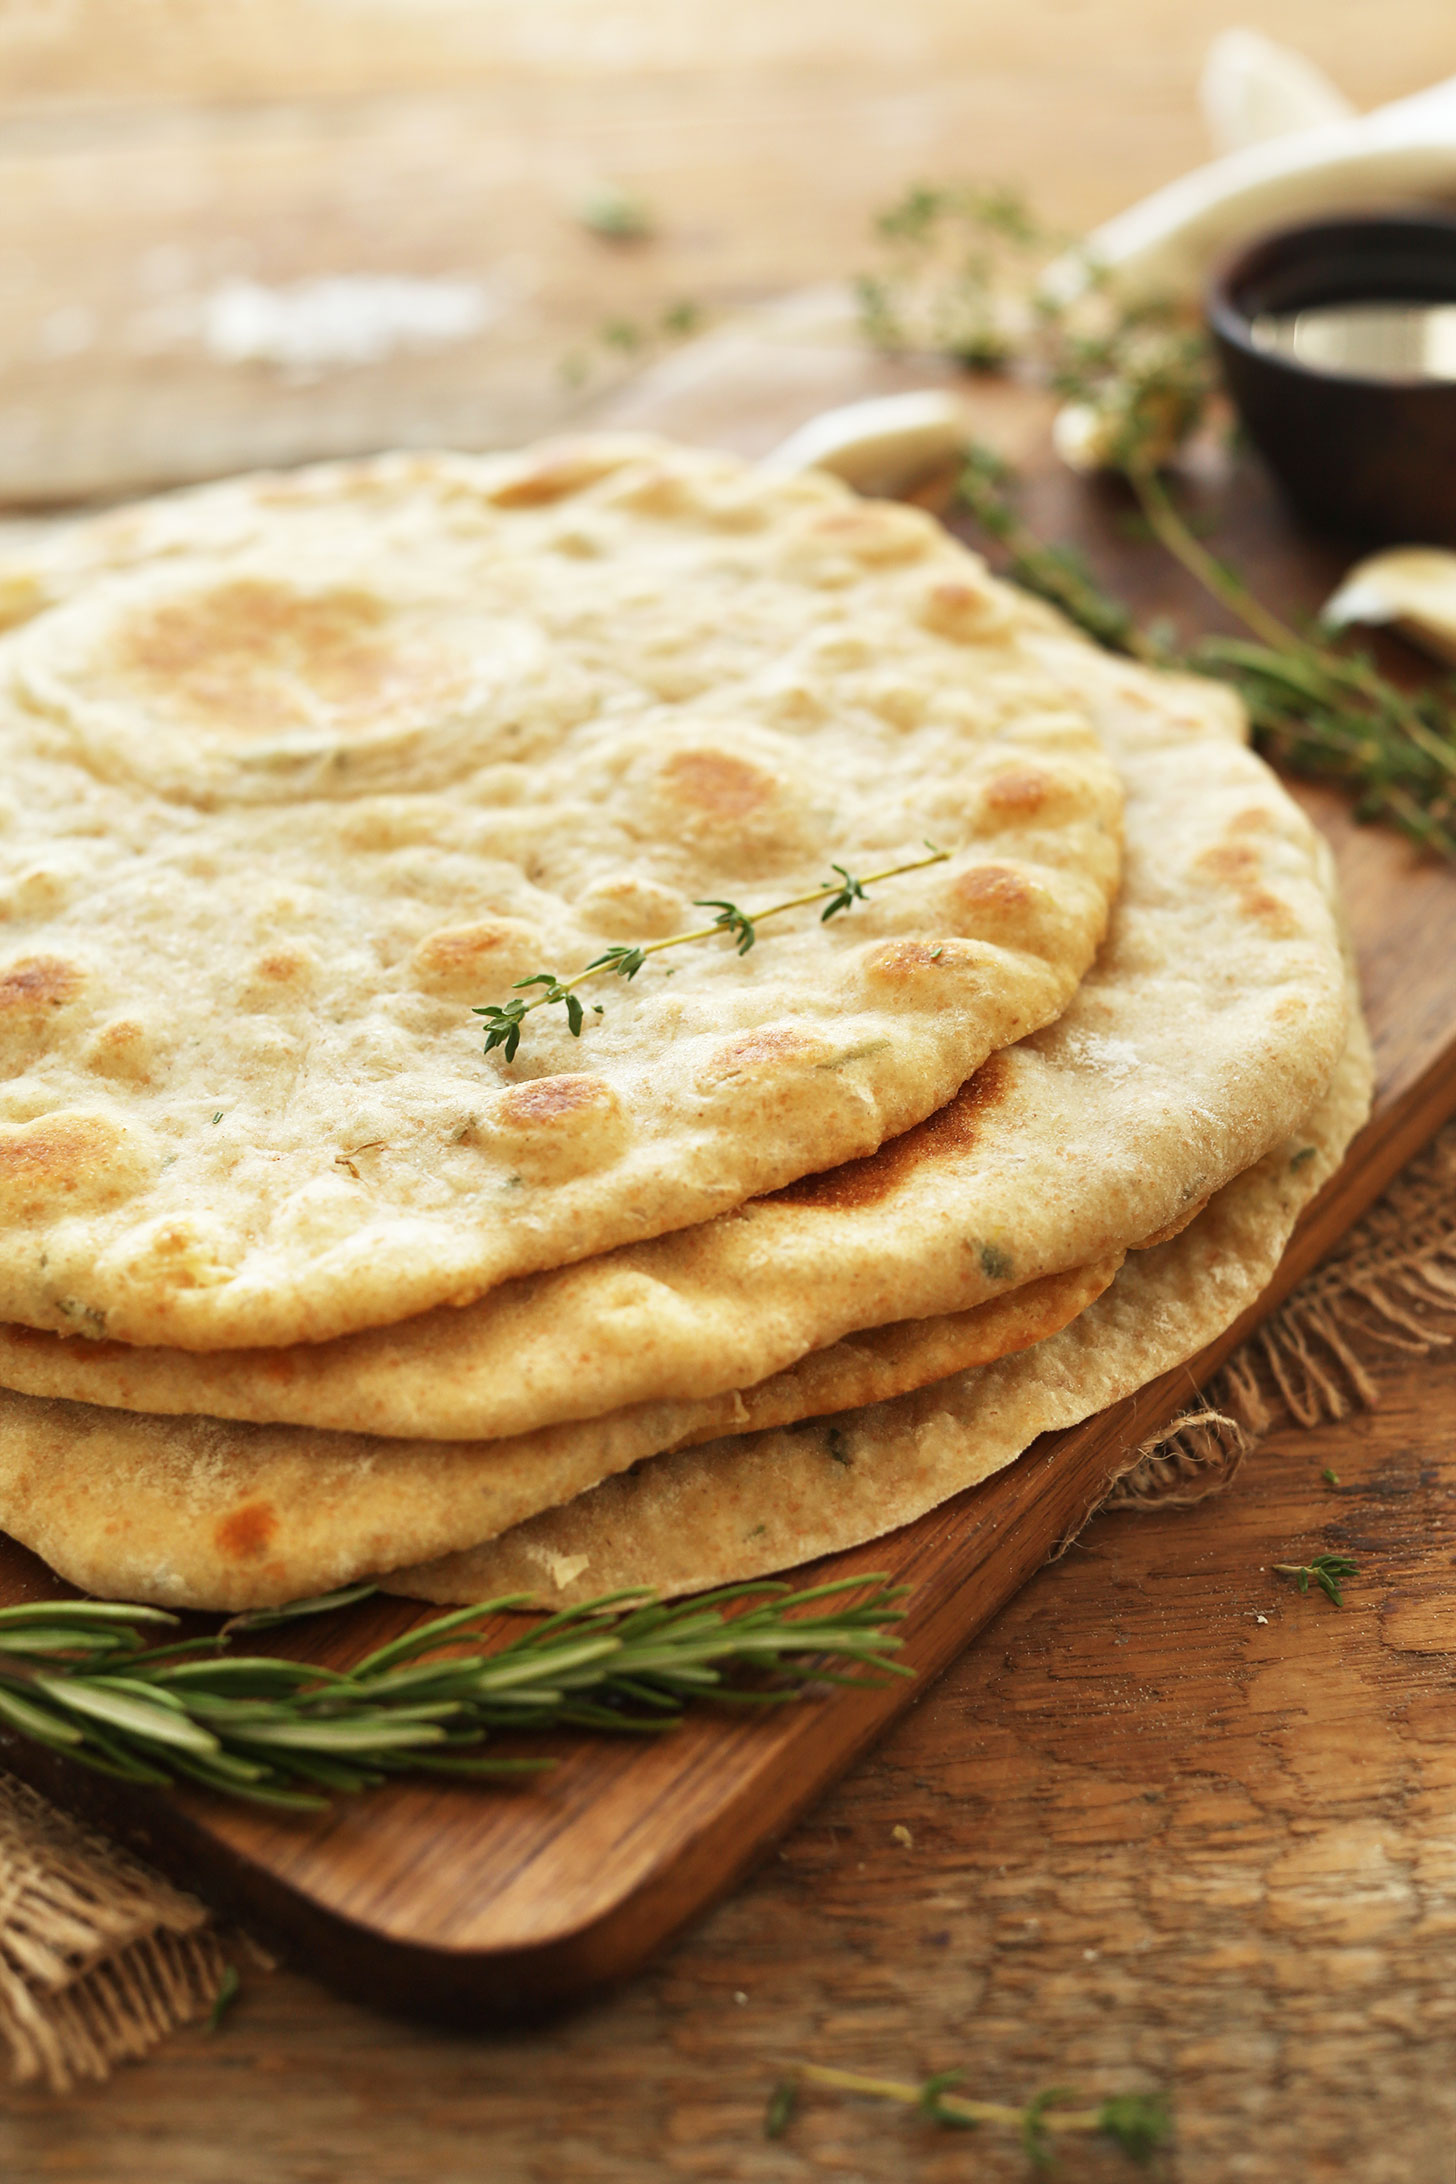 Stack of our healthy Vegan Flatbreads made with garlic and herbs